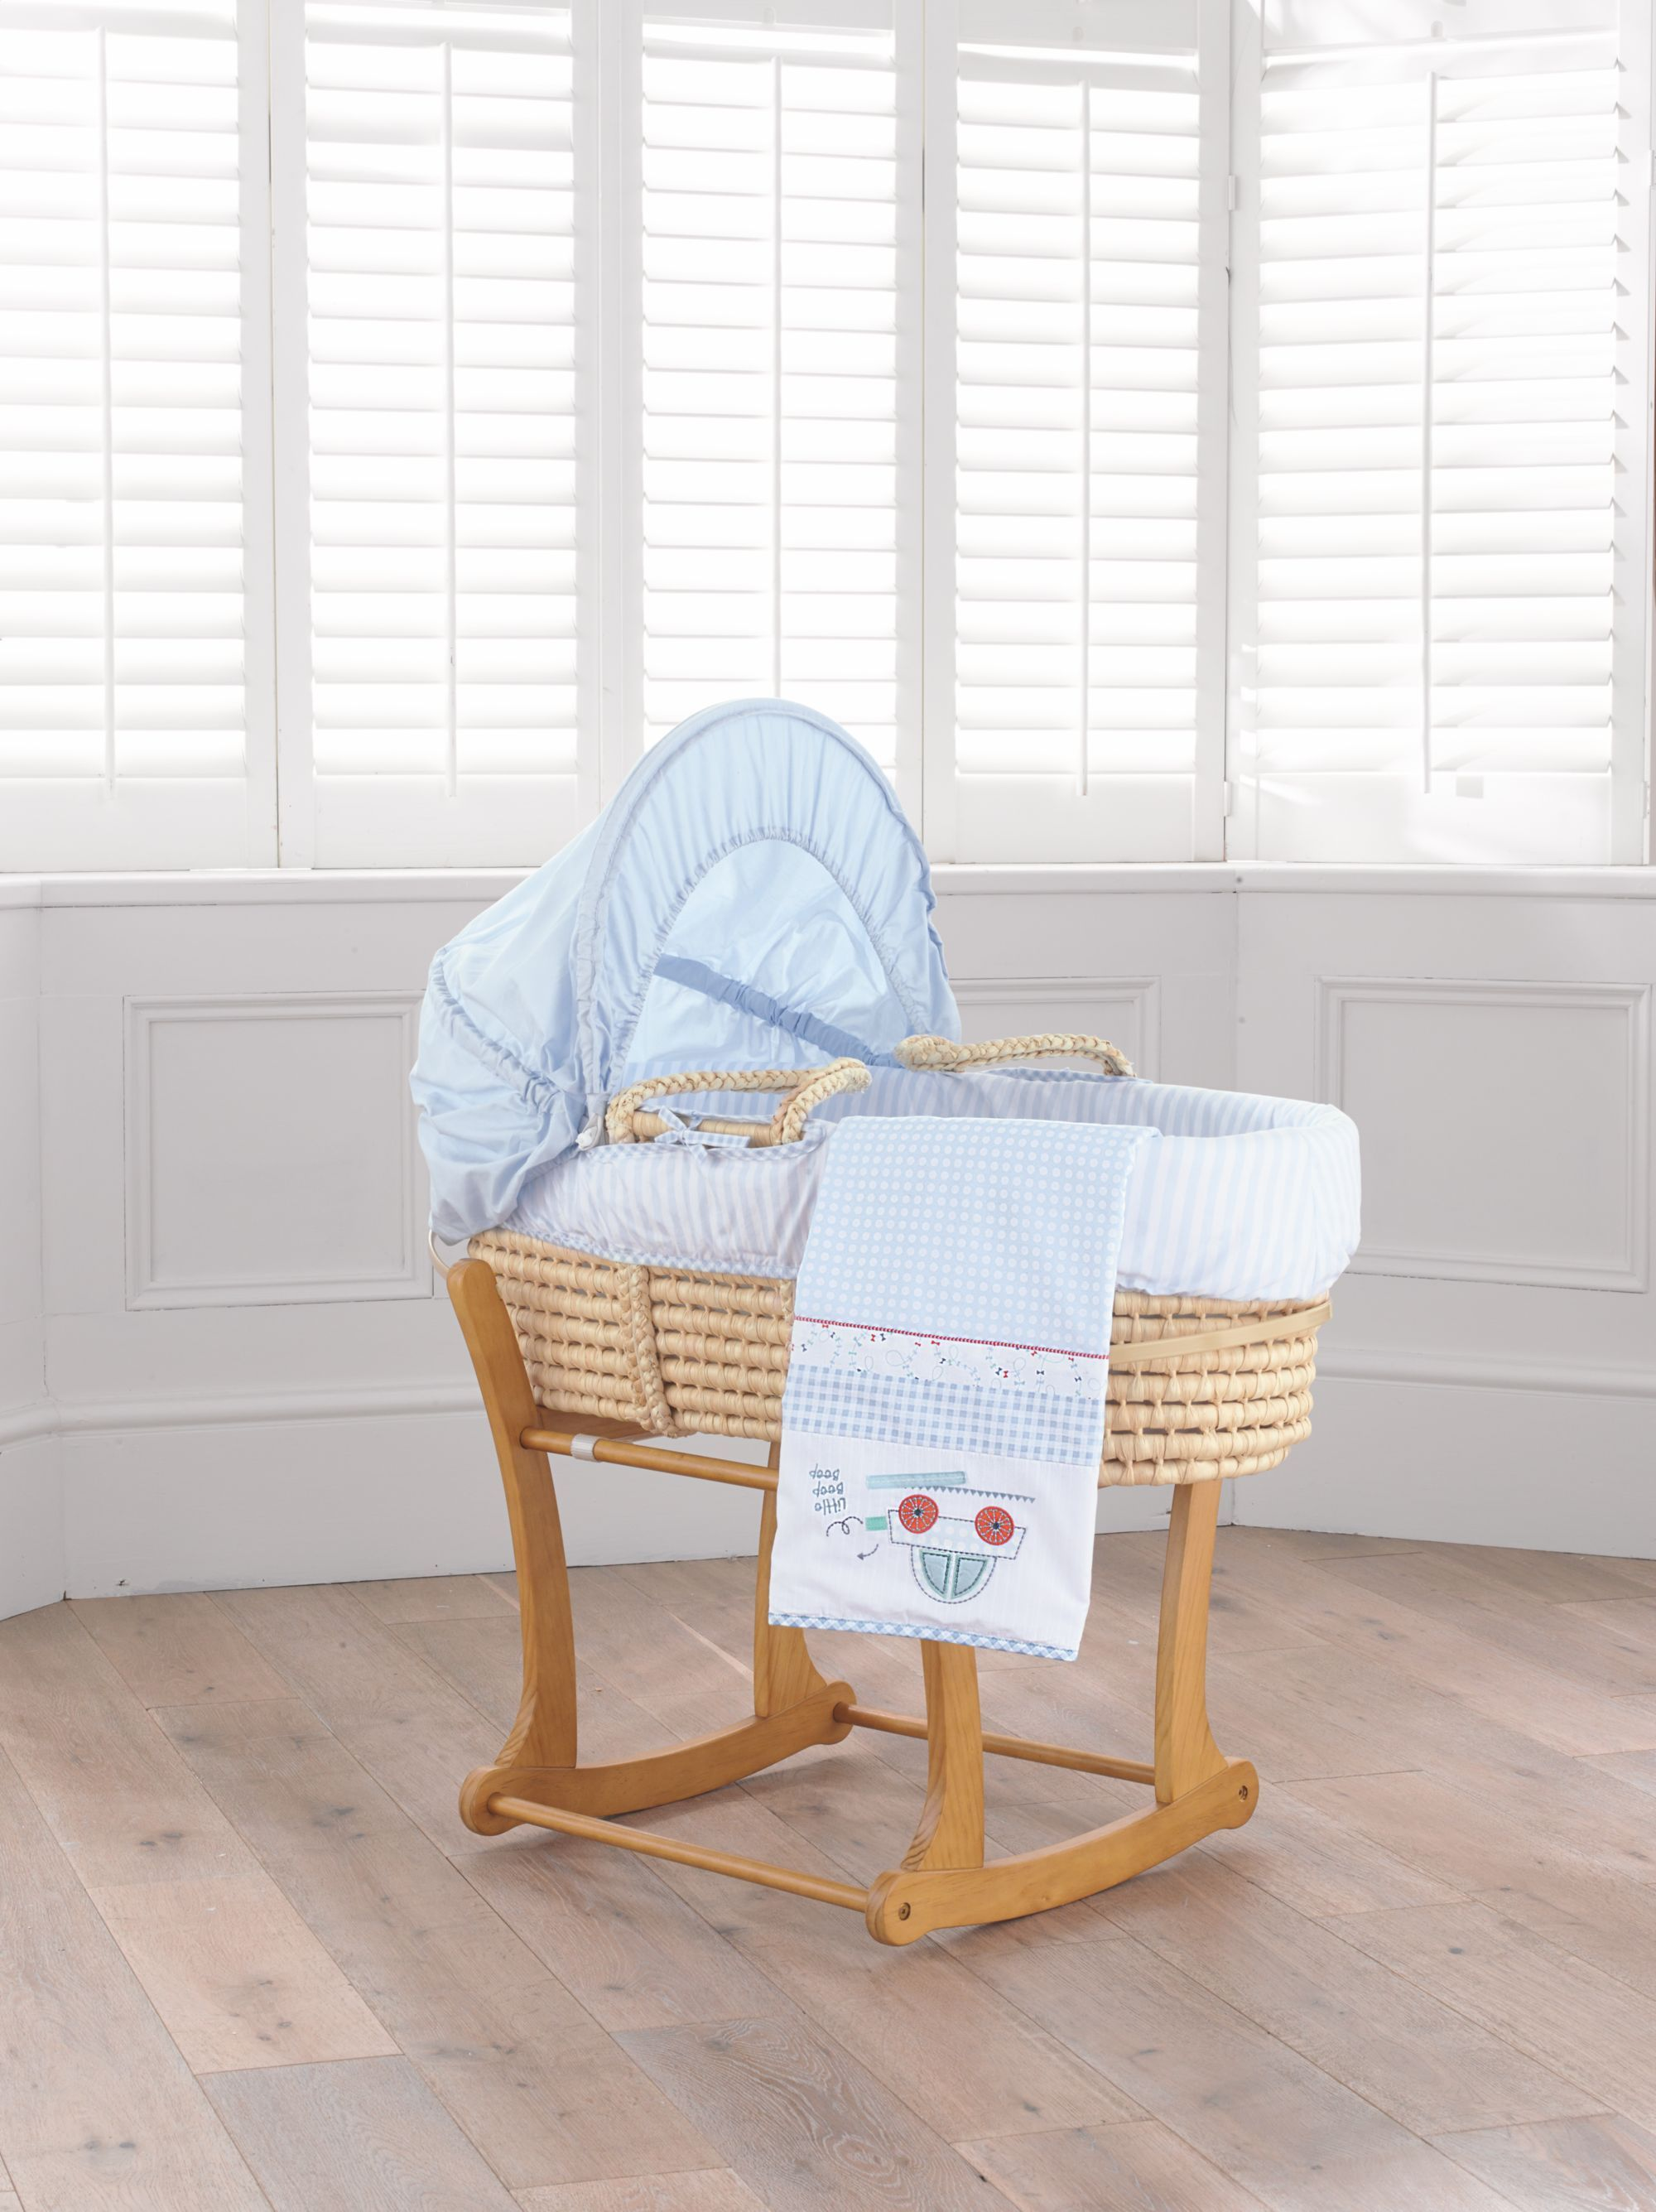 Wicker crib for sale durban - Moses Basket